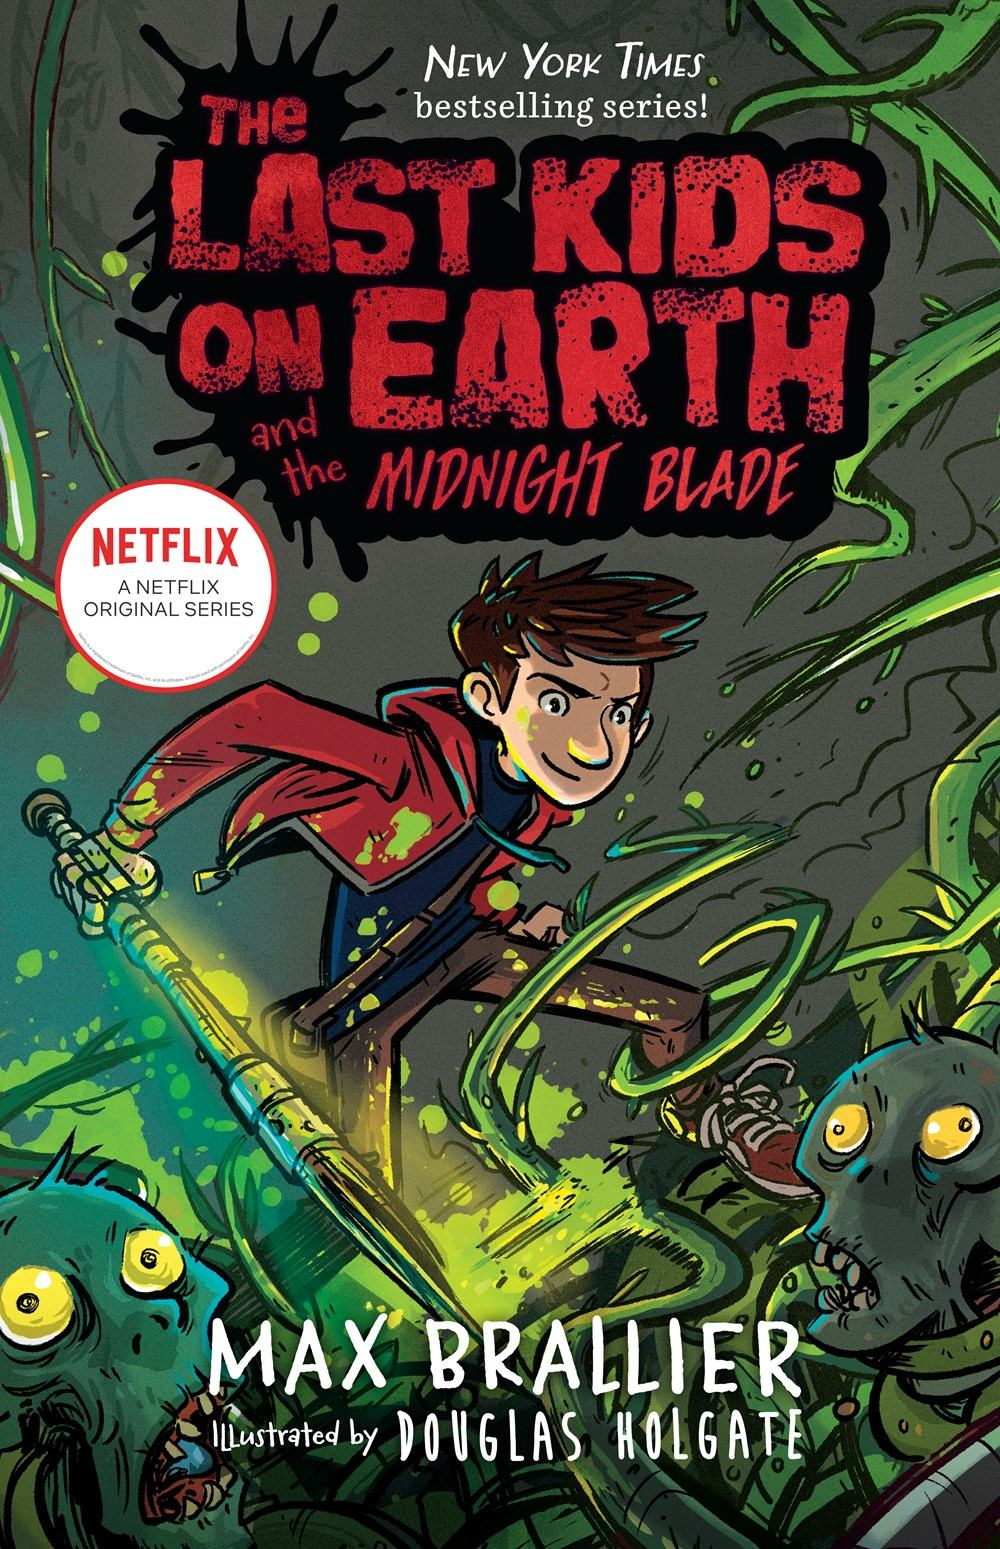 Image for The Last Kids On Earth And The Midnight Blade